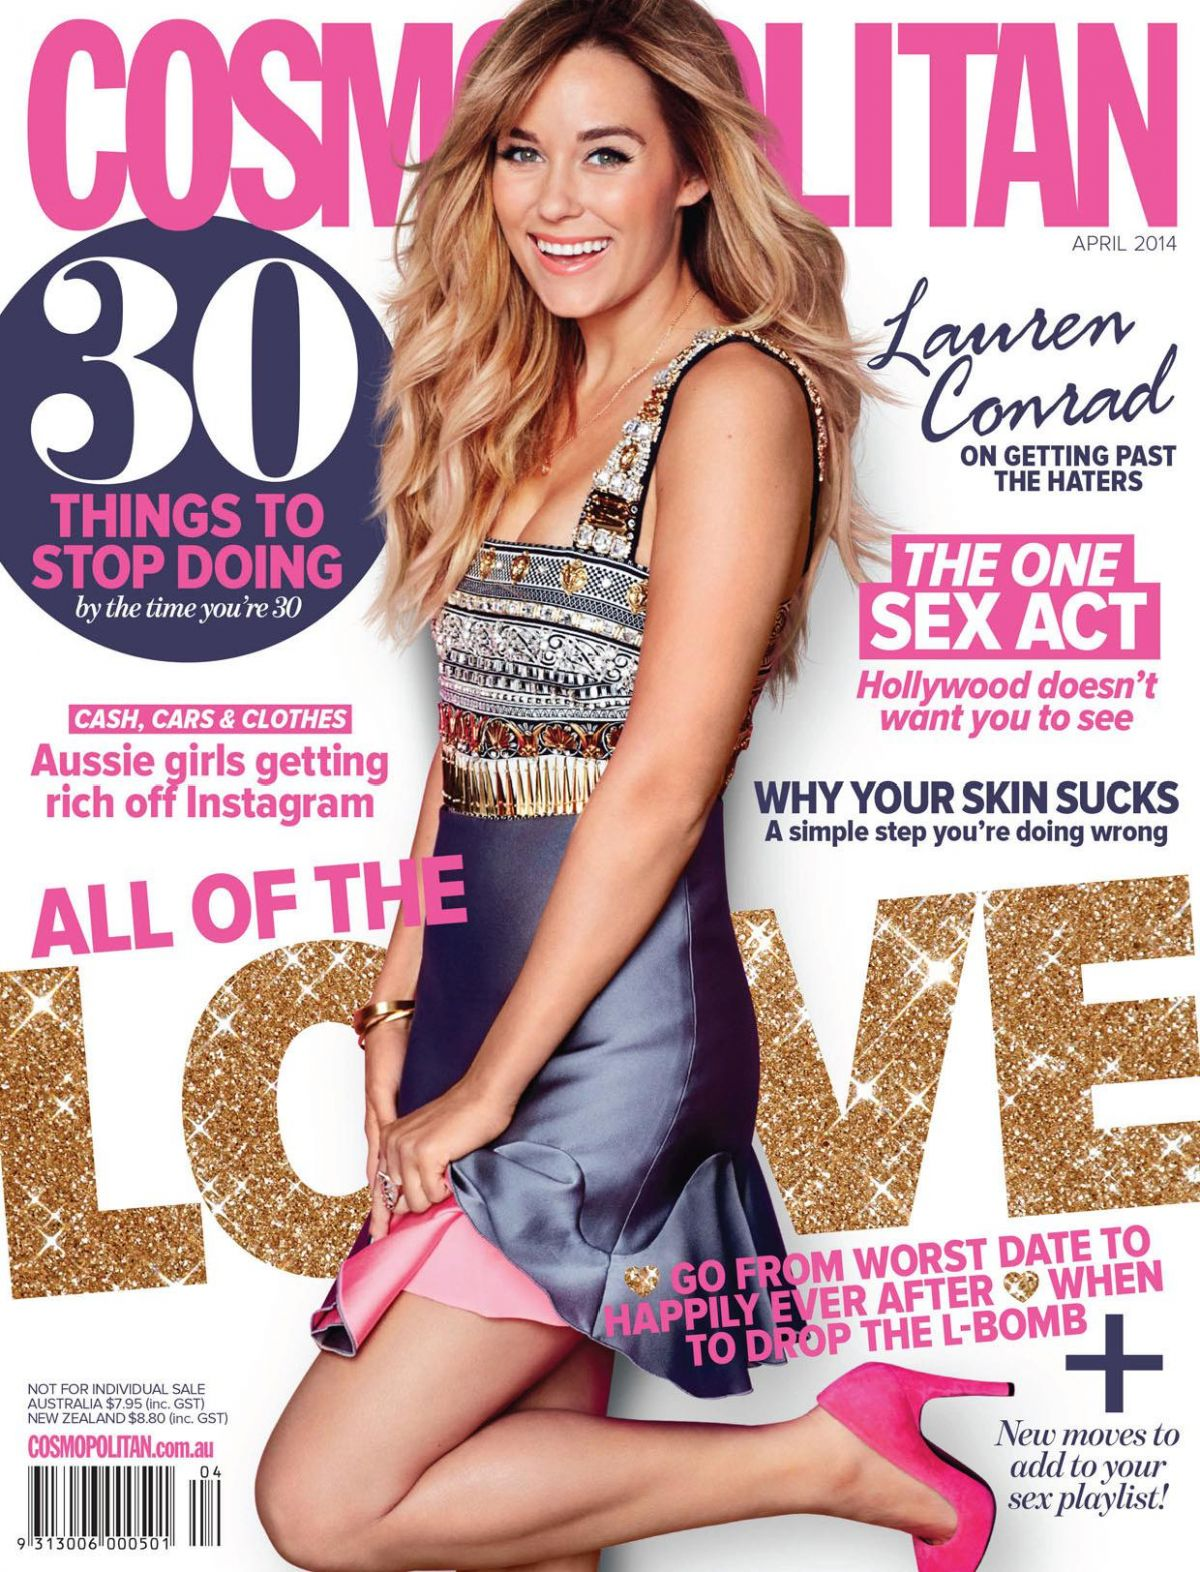 LAUREN CONRAD on the Cover of Cosmopolitan Magazine, April 2014 Issue